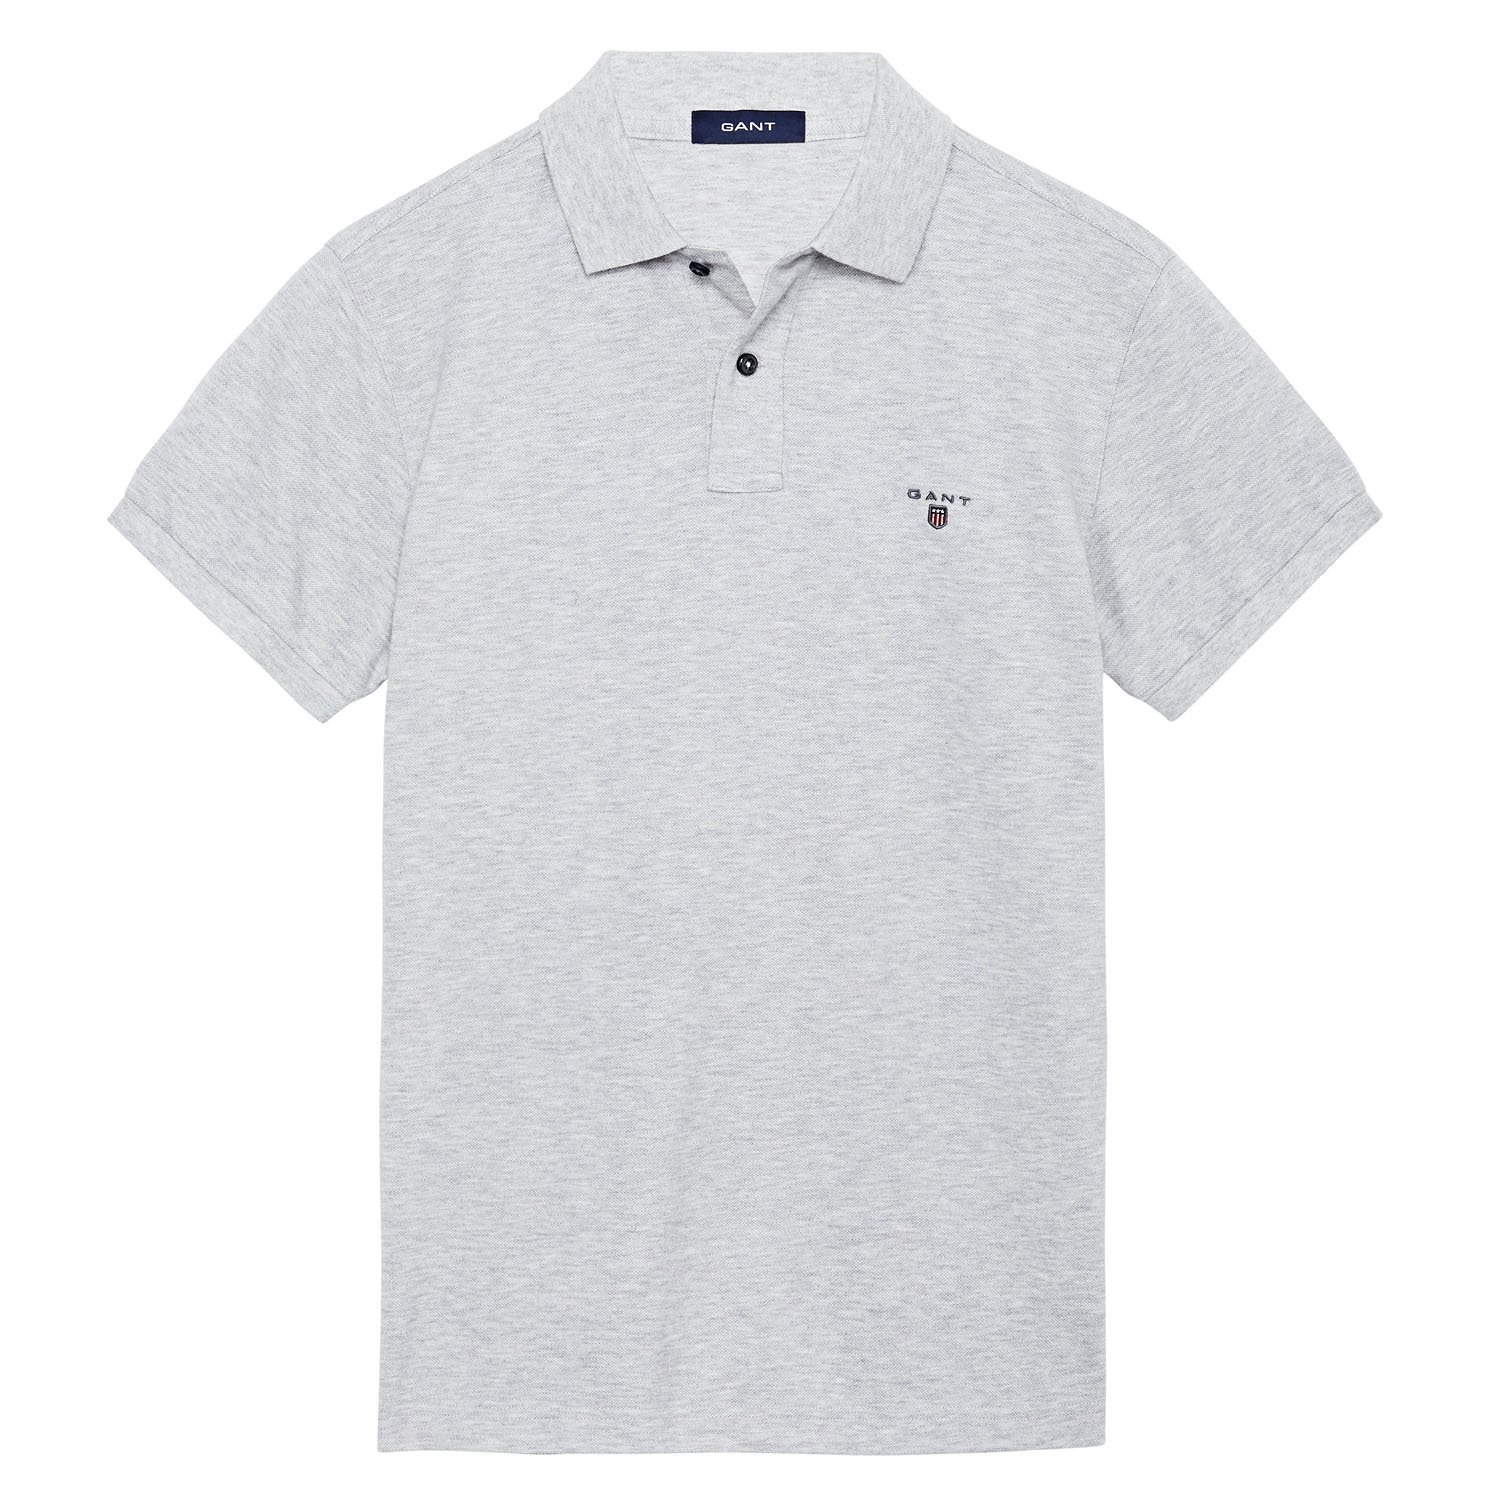 Gant - Polo - para Hombre Light Grey Melange 94 X-Large: Amazon.es ...